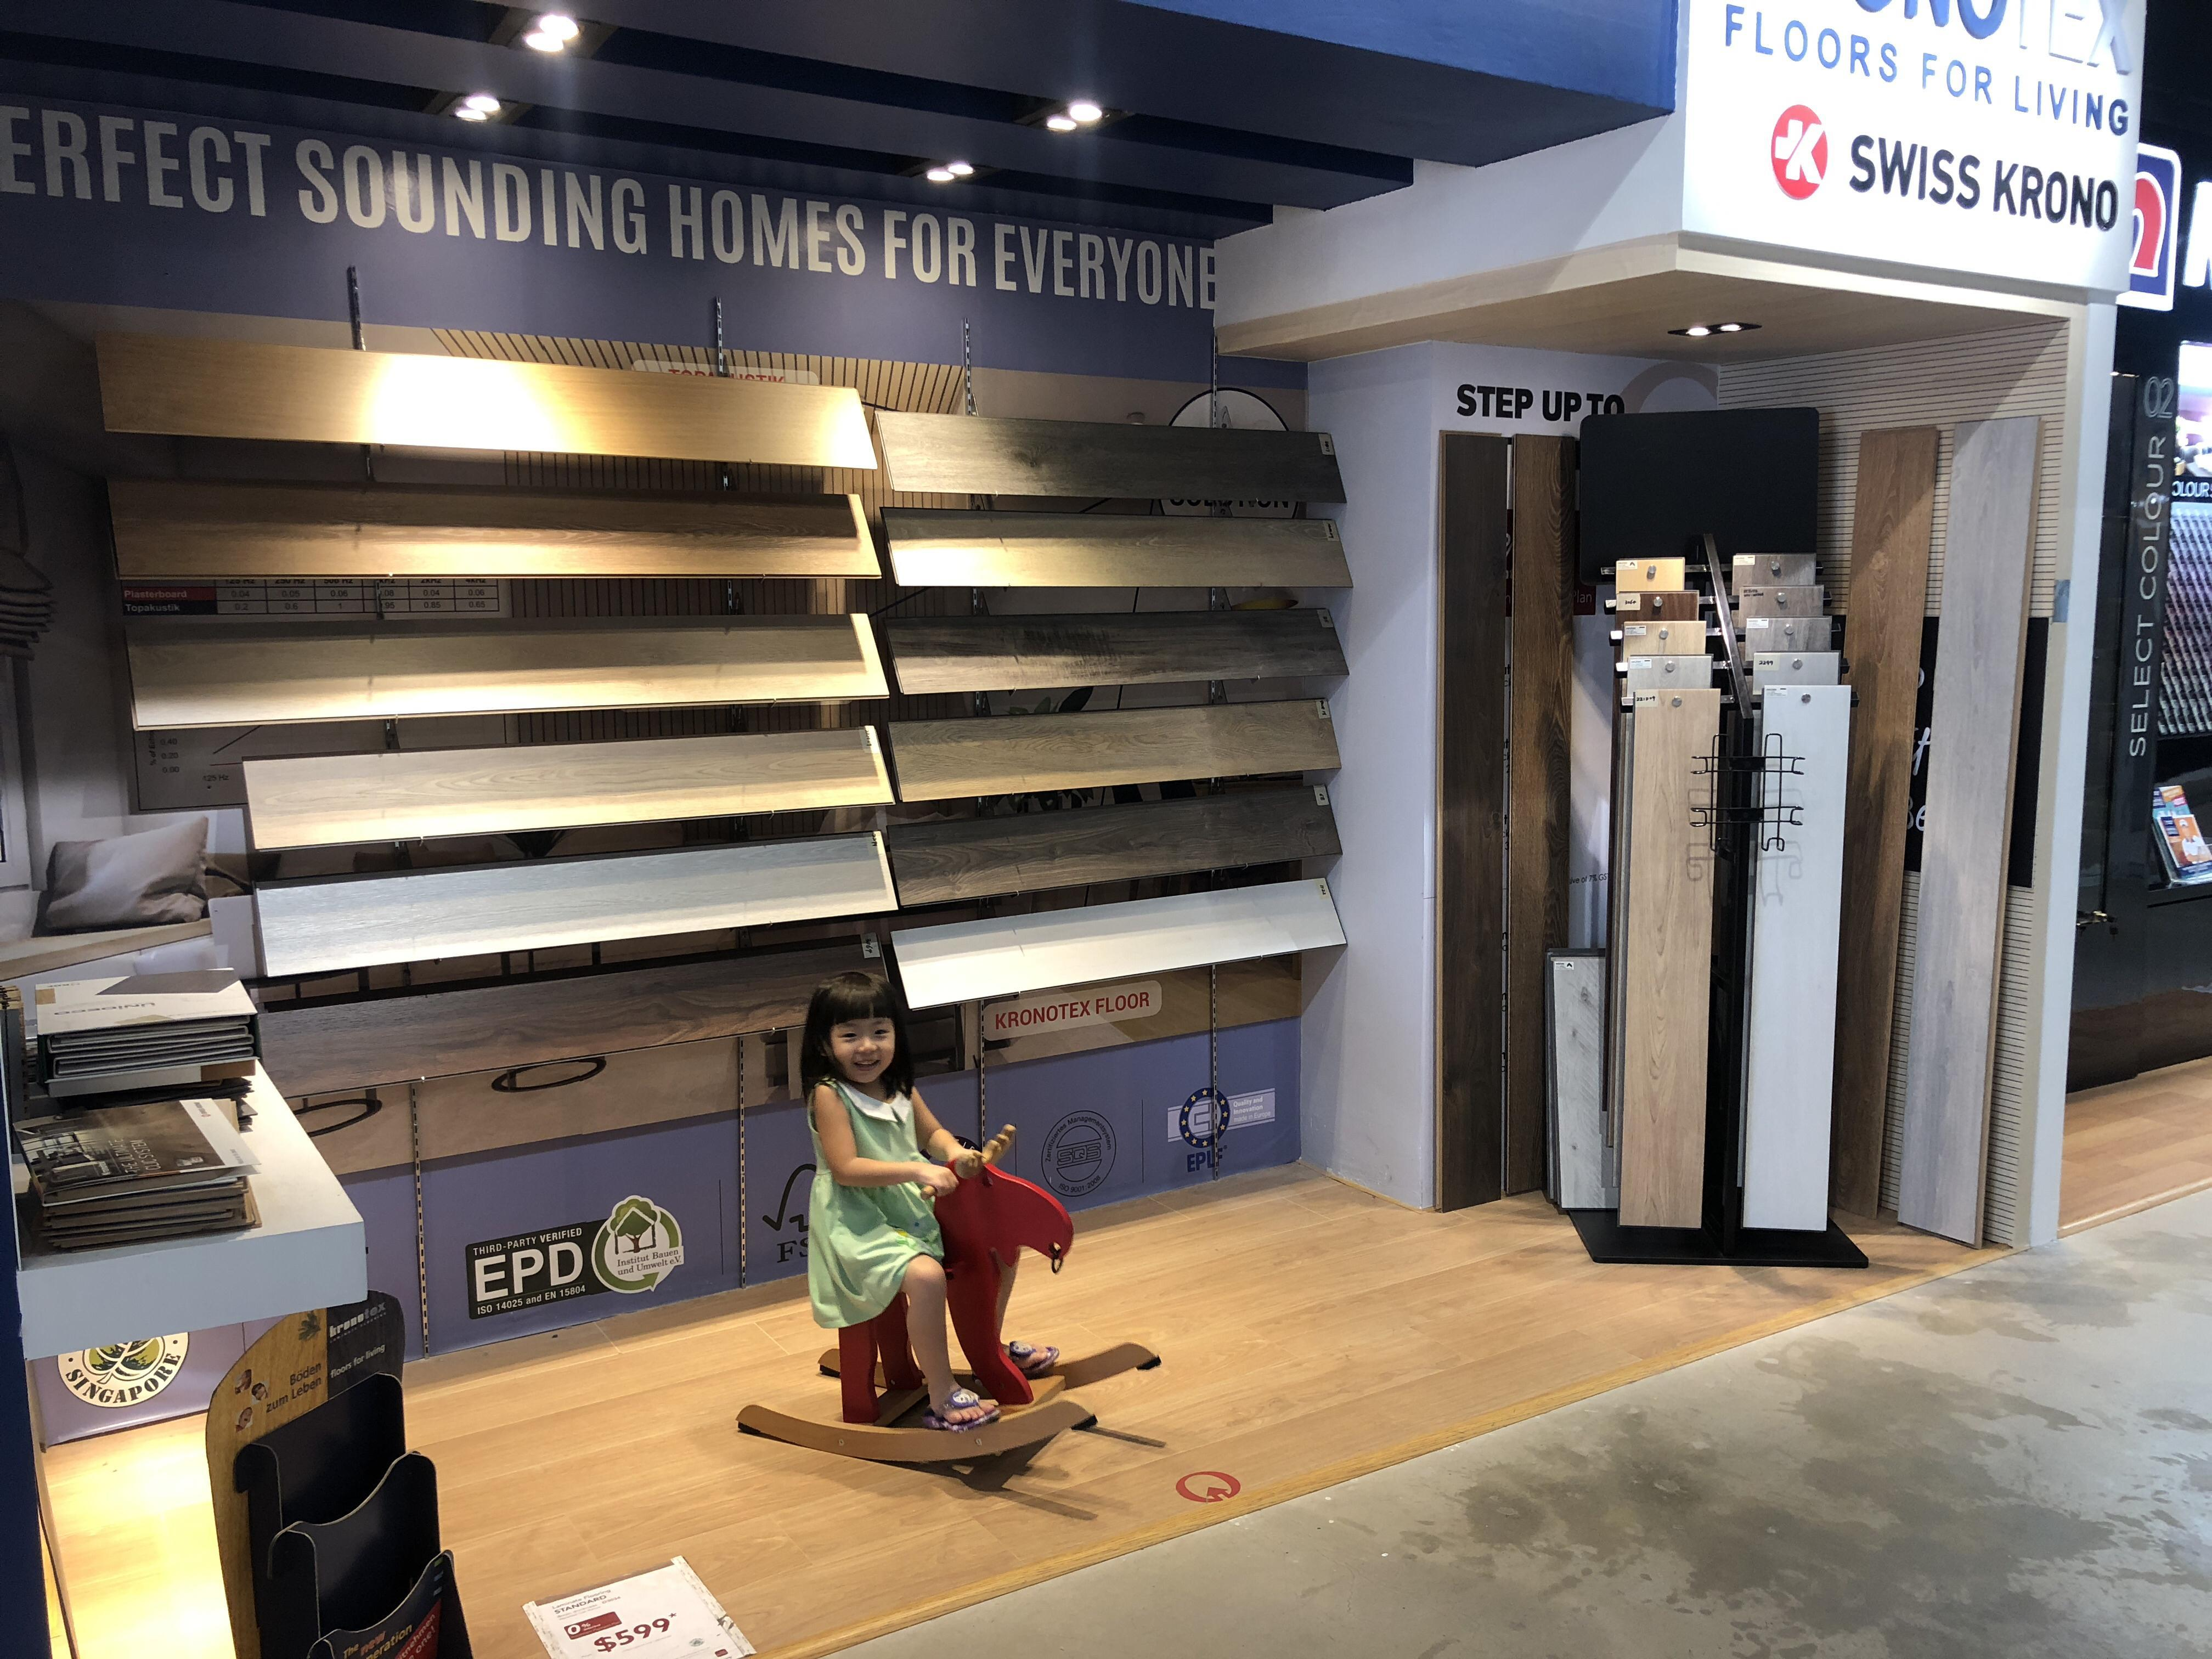 Design Fußboden Vinyl ~ Vinyl and laminate flooring event at home fix & more 3 mar 2018